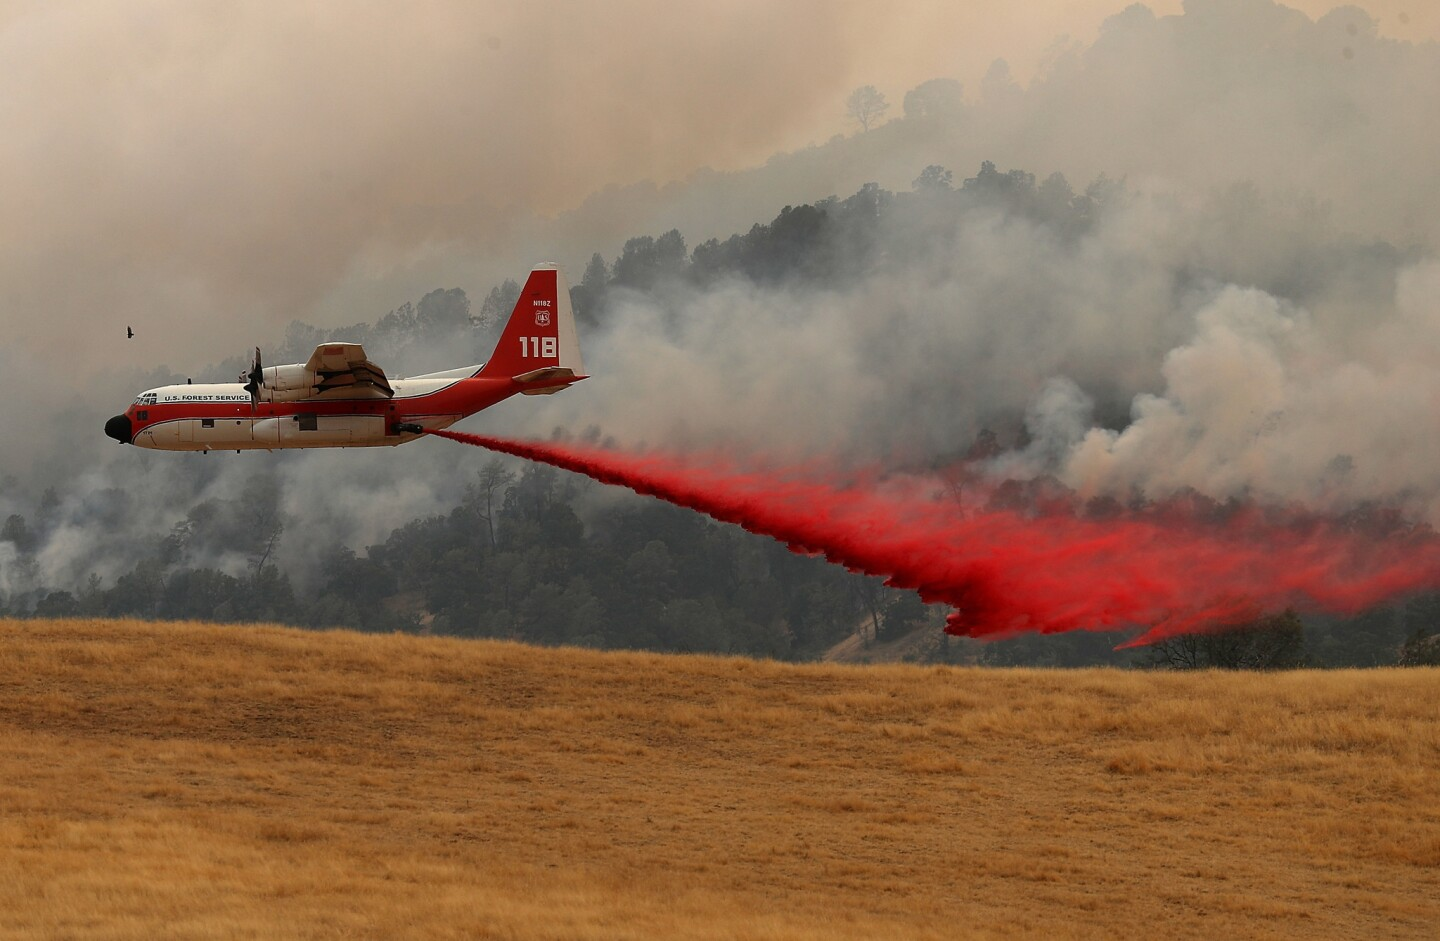 A firefighting air tanker drops fire retardant on a hillside ahead of the County Fire Monday in Esparto, California.